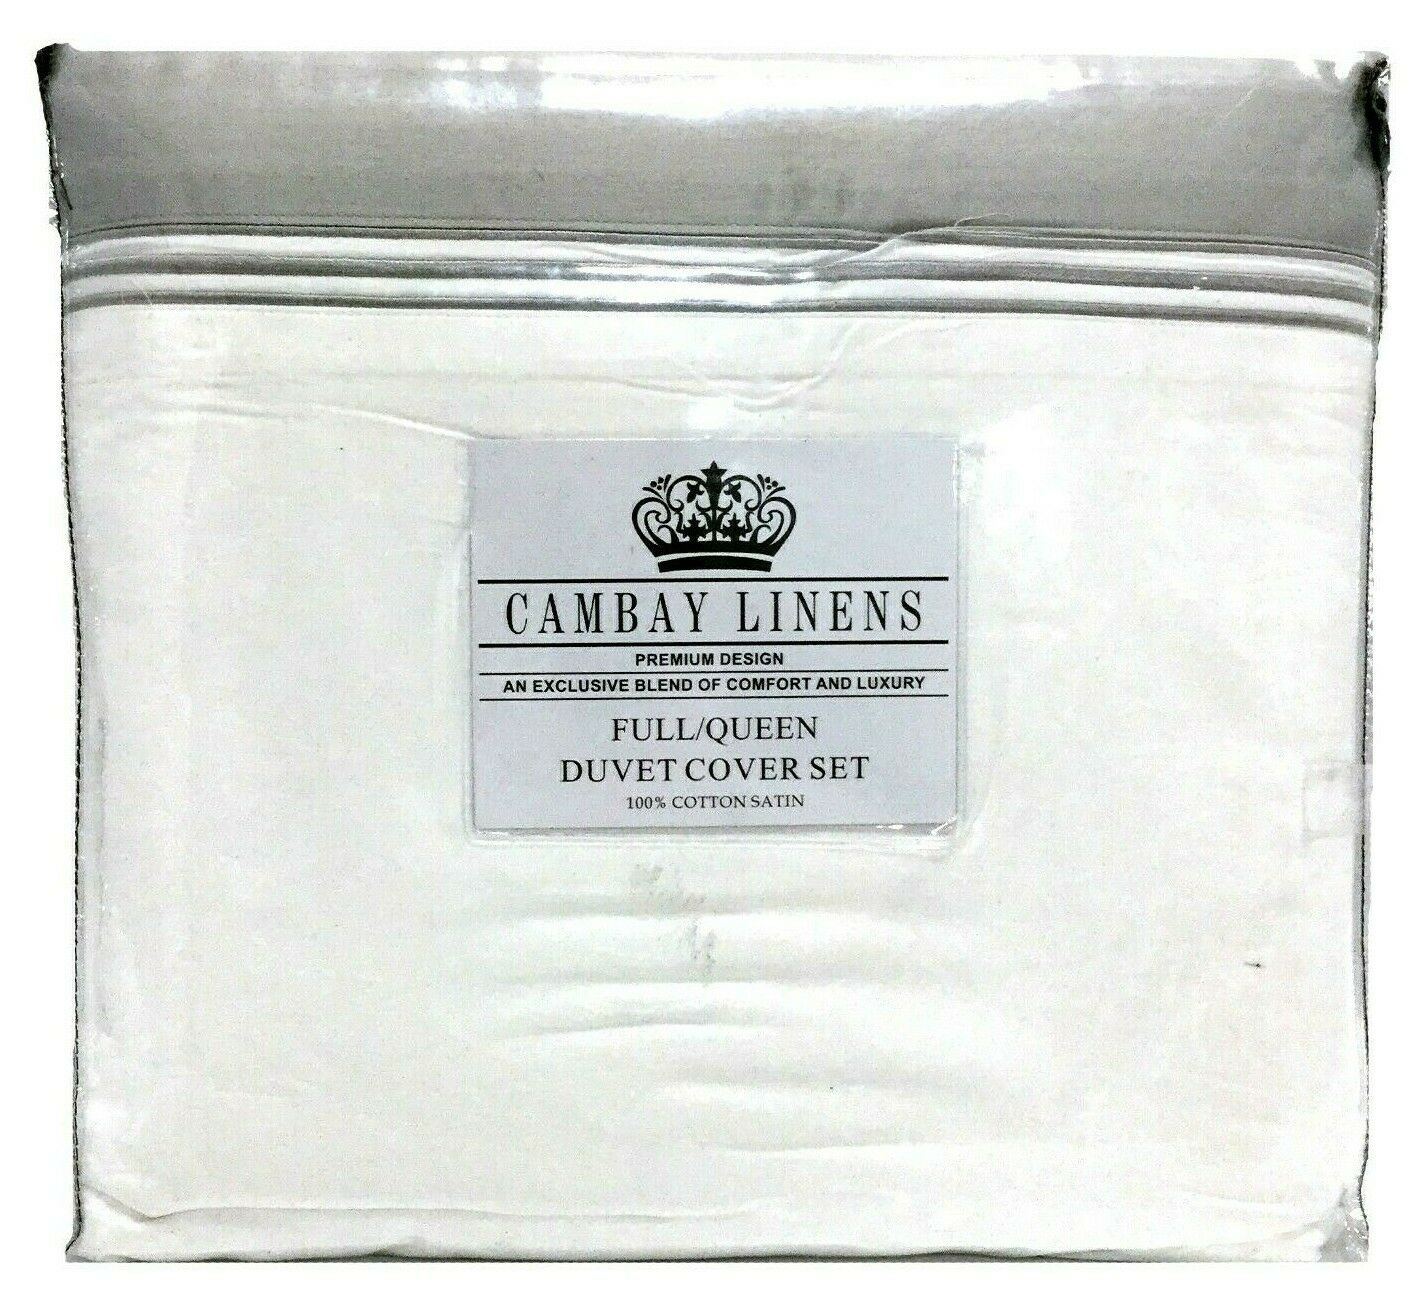 Cambay Linens 3 Piece Luxurious Cotton Satin Duvet Cover Set, Full Queen